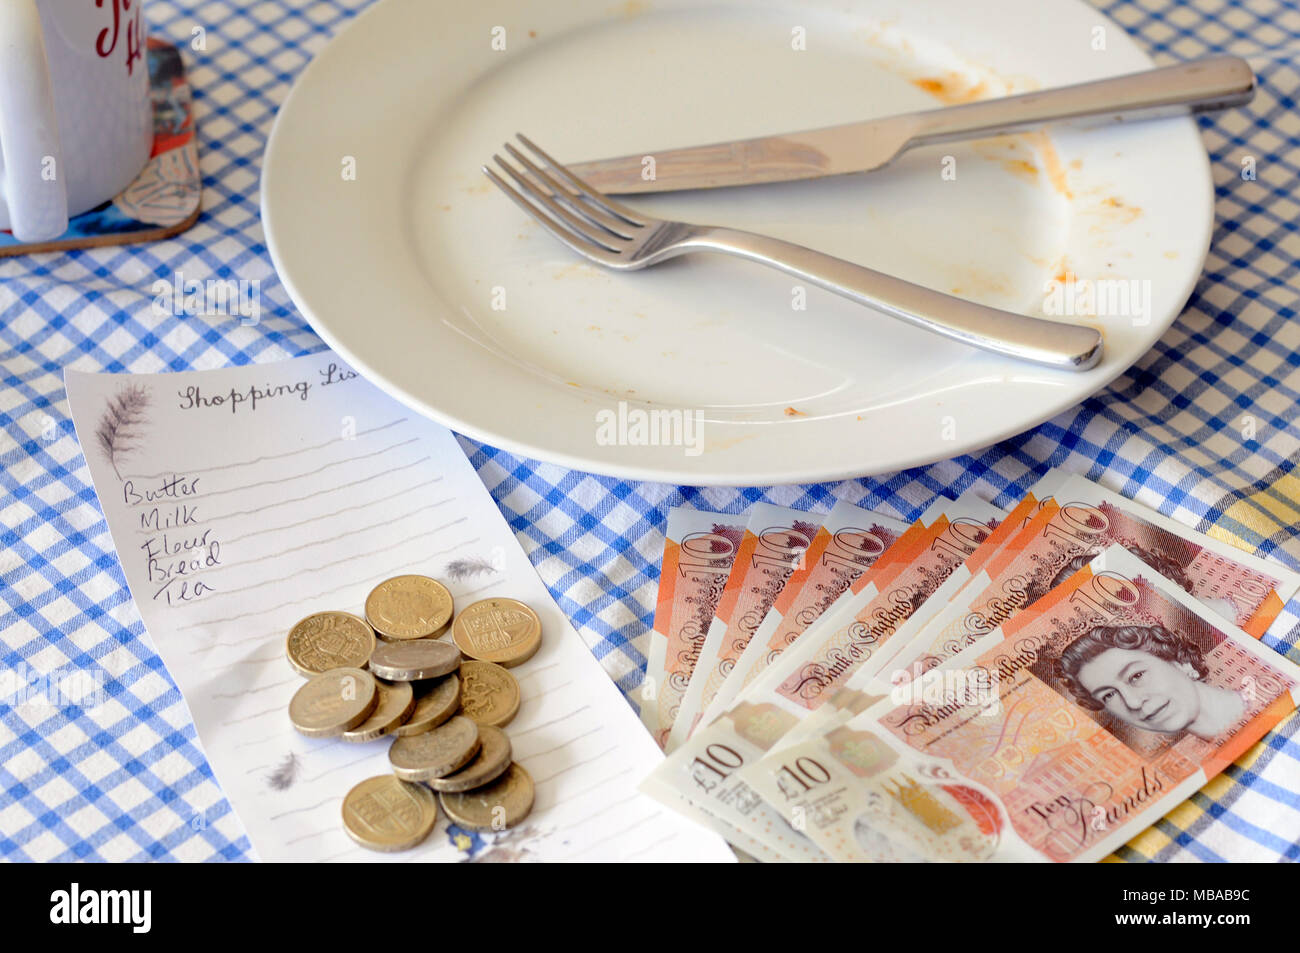 The high price of food and shopping bills for the average person in England has rocketed around the uncertainty of Brexit many worry about poverty. Stock Photo